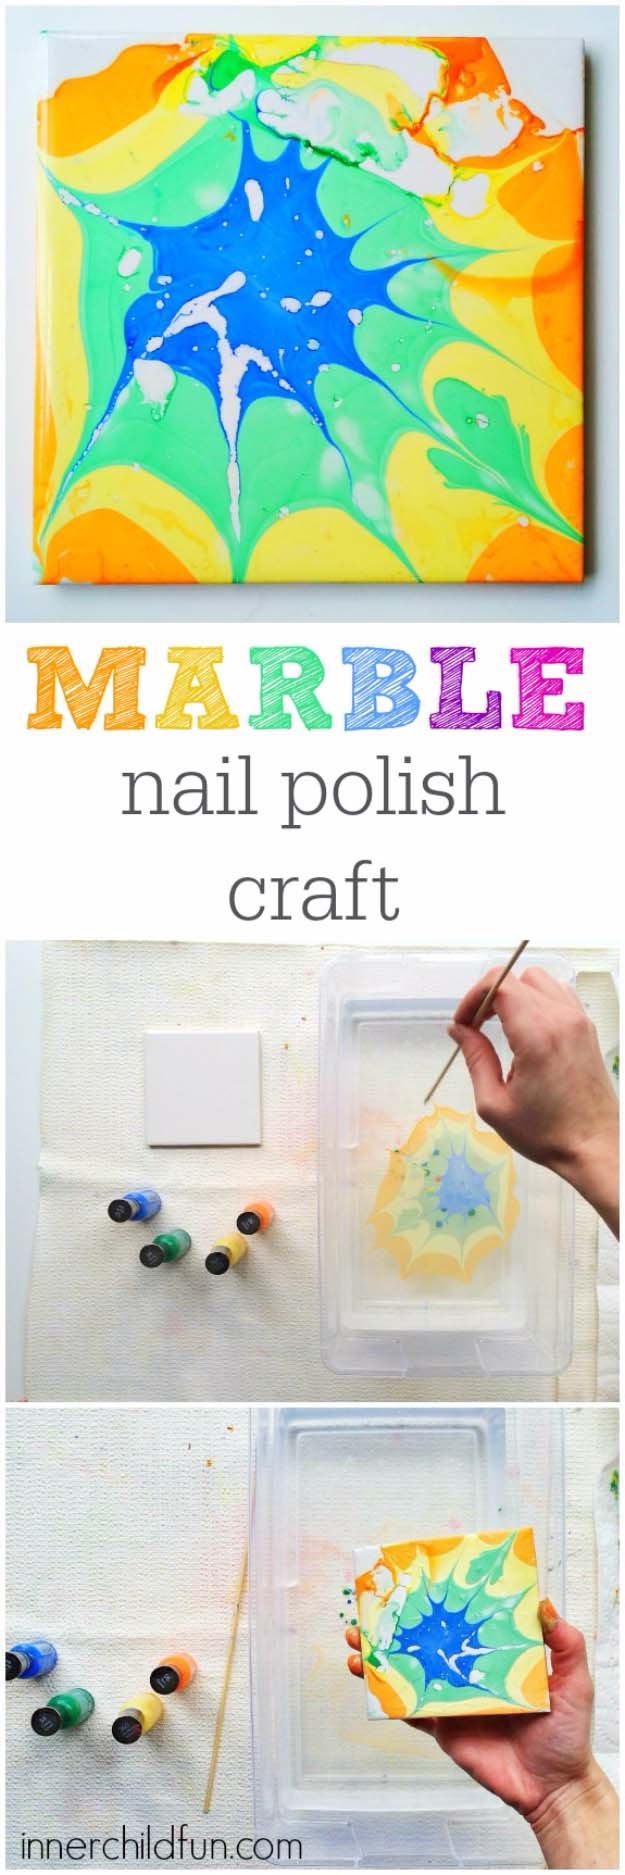 easy fun craft ideas for adults 31 incredibly cool diy crafts using nail 7700